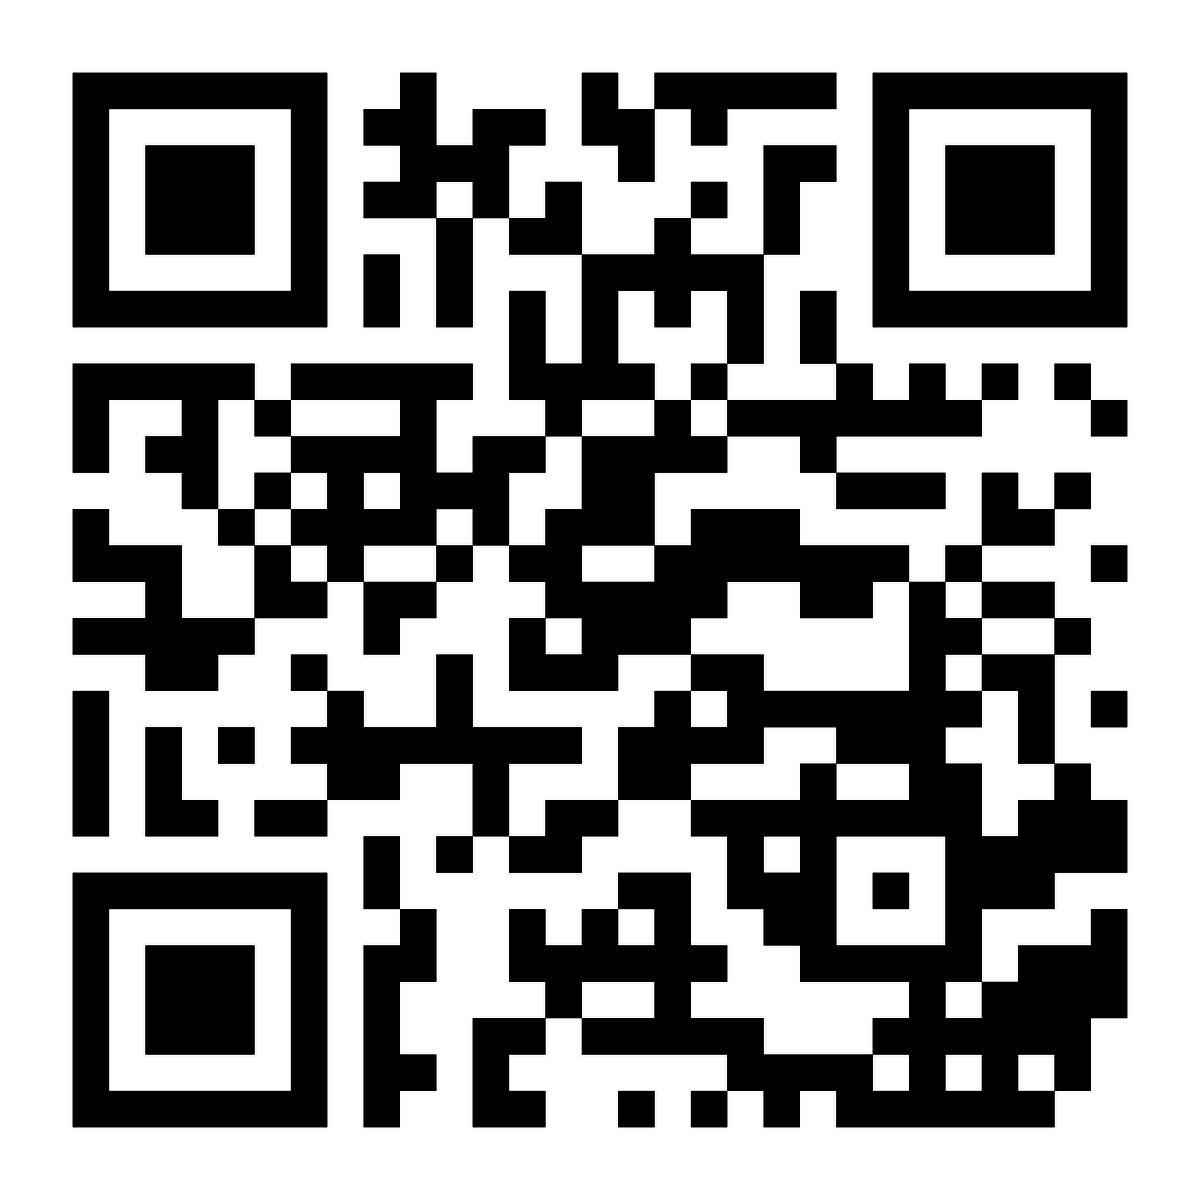 qrcode fairplaid